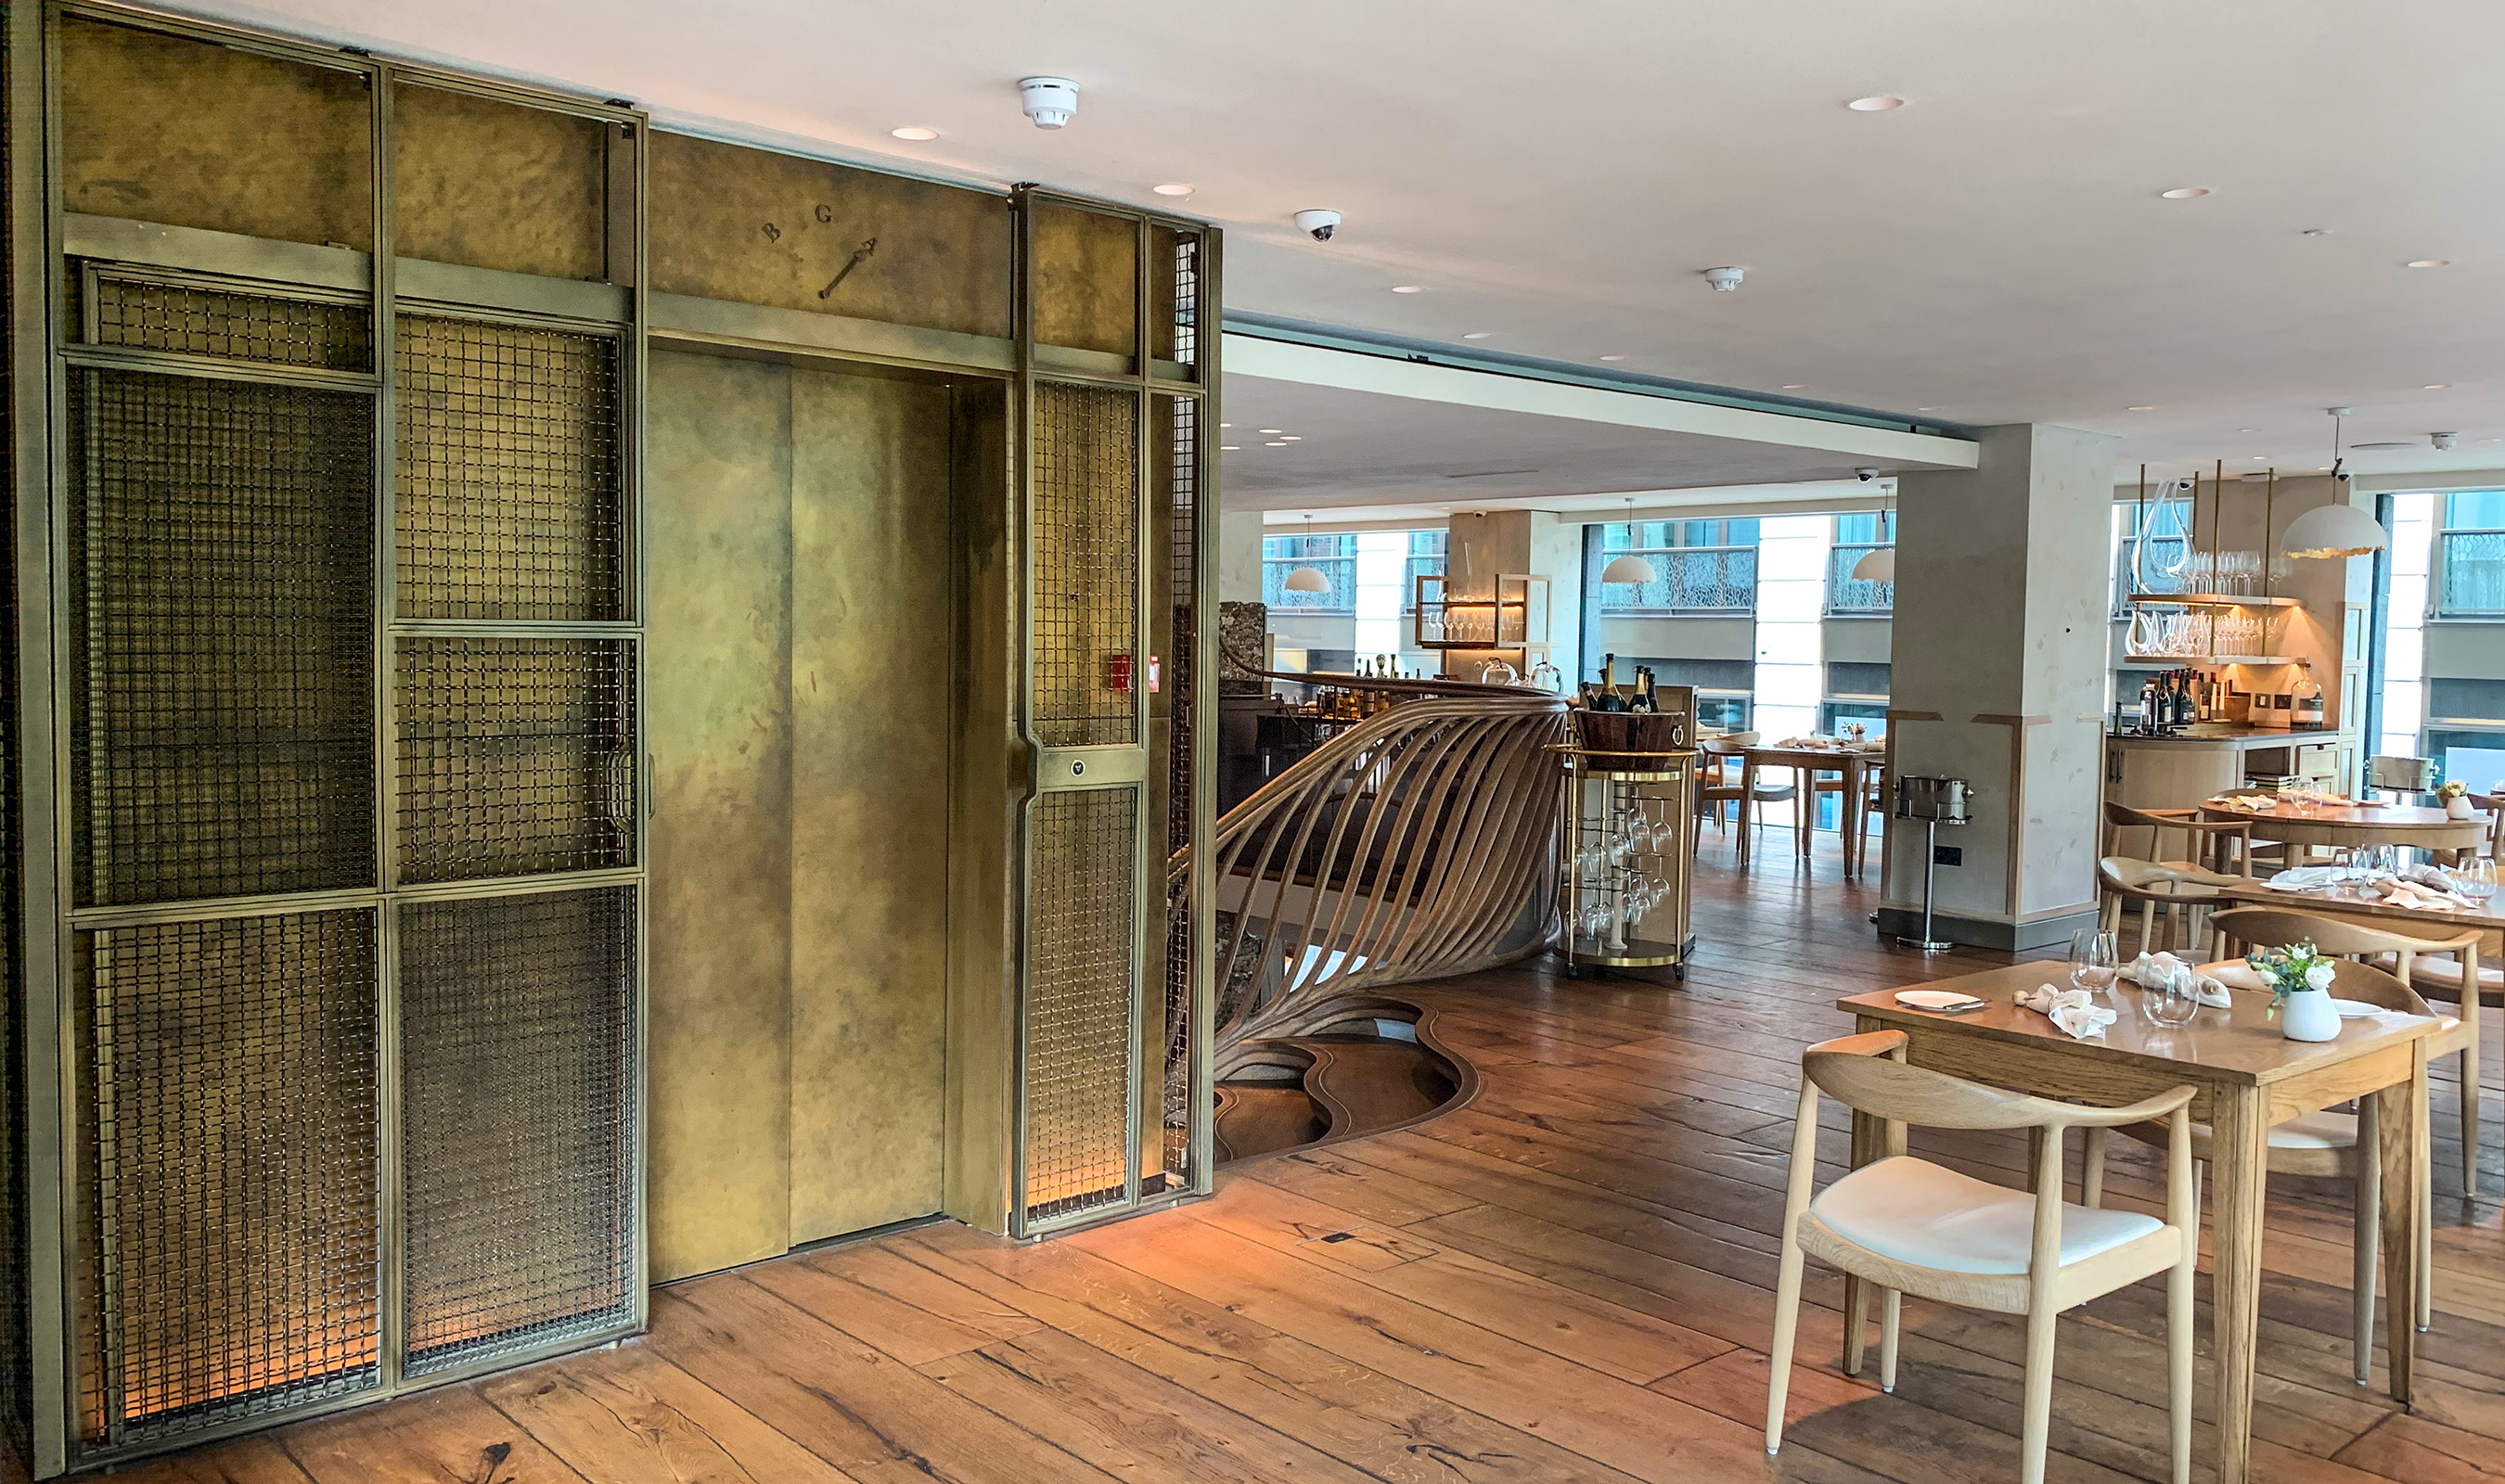 Hide at 85 Picadilly features Banker Wire's M22-28 and I-188 in an antique brass secondary finish as cladding for the elevator.